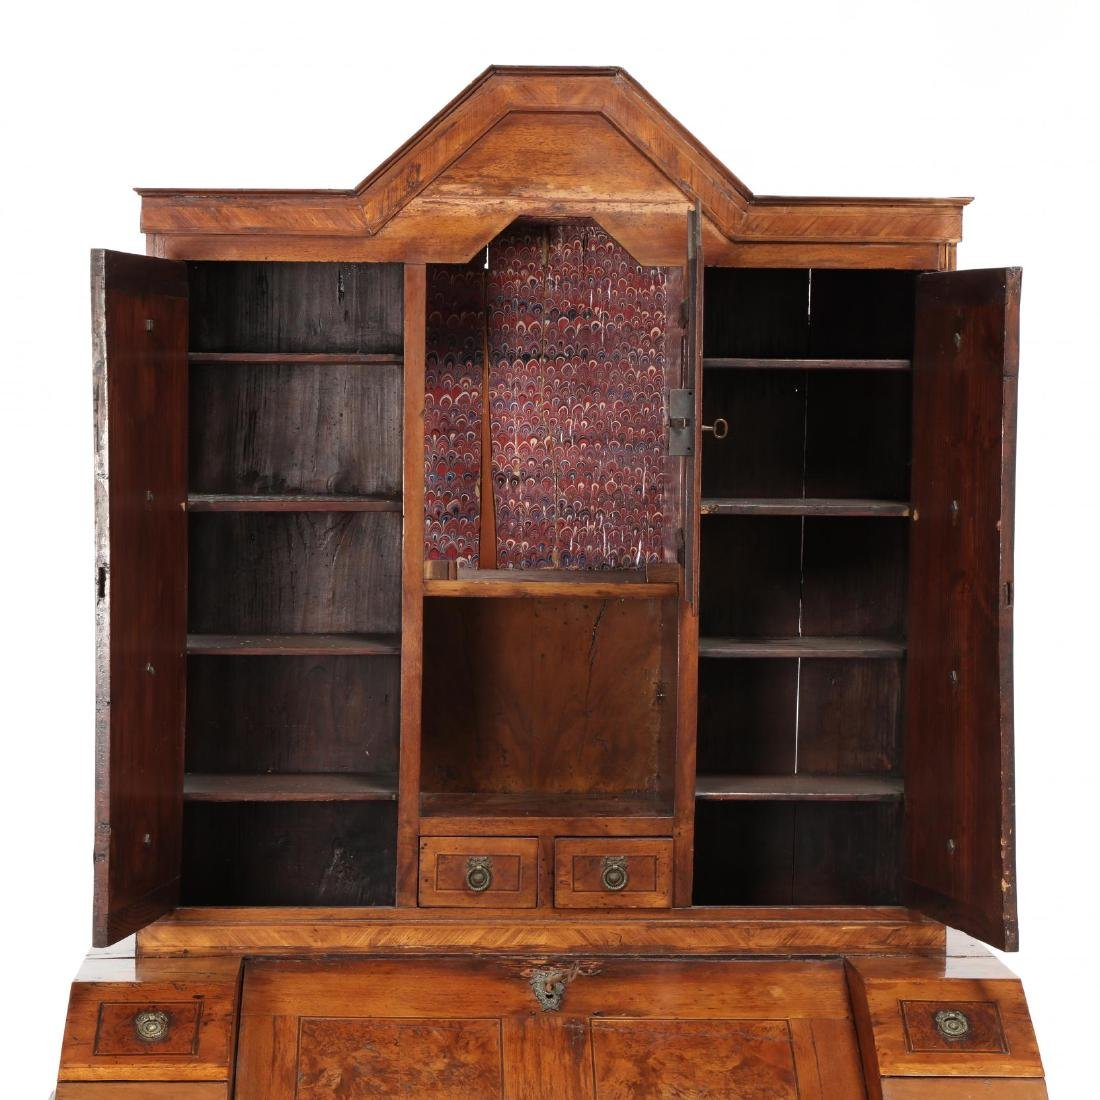 Antique Italian Inlaid Secretaire Bookcase - 4